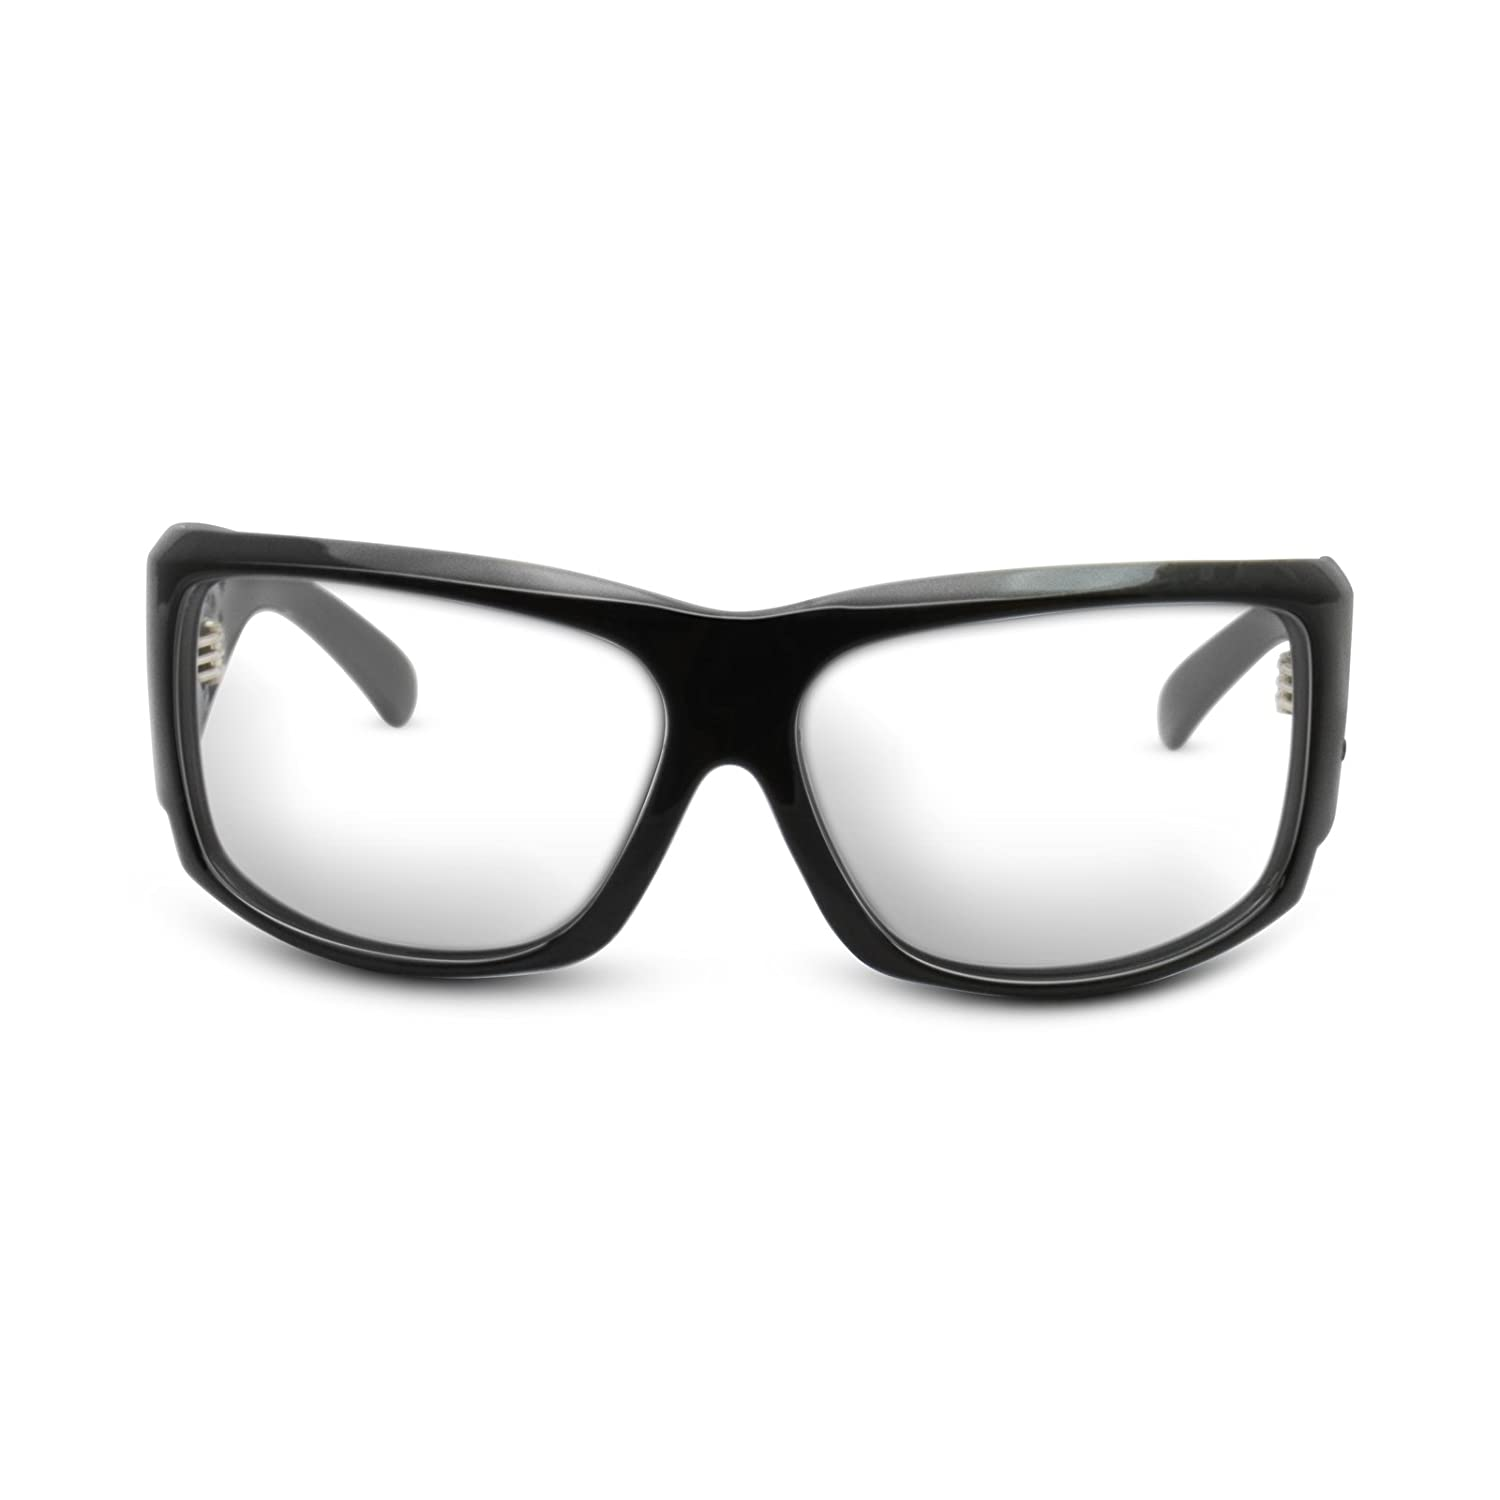 3ba55c871f Amazon.com  Dark Brown Replacement Lenses for Electric Hoy  Clothing